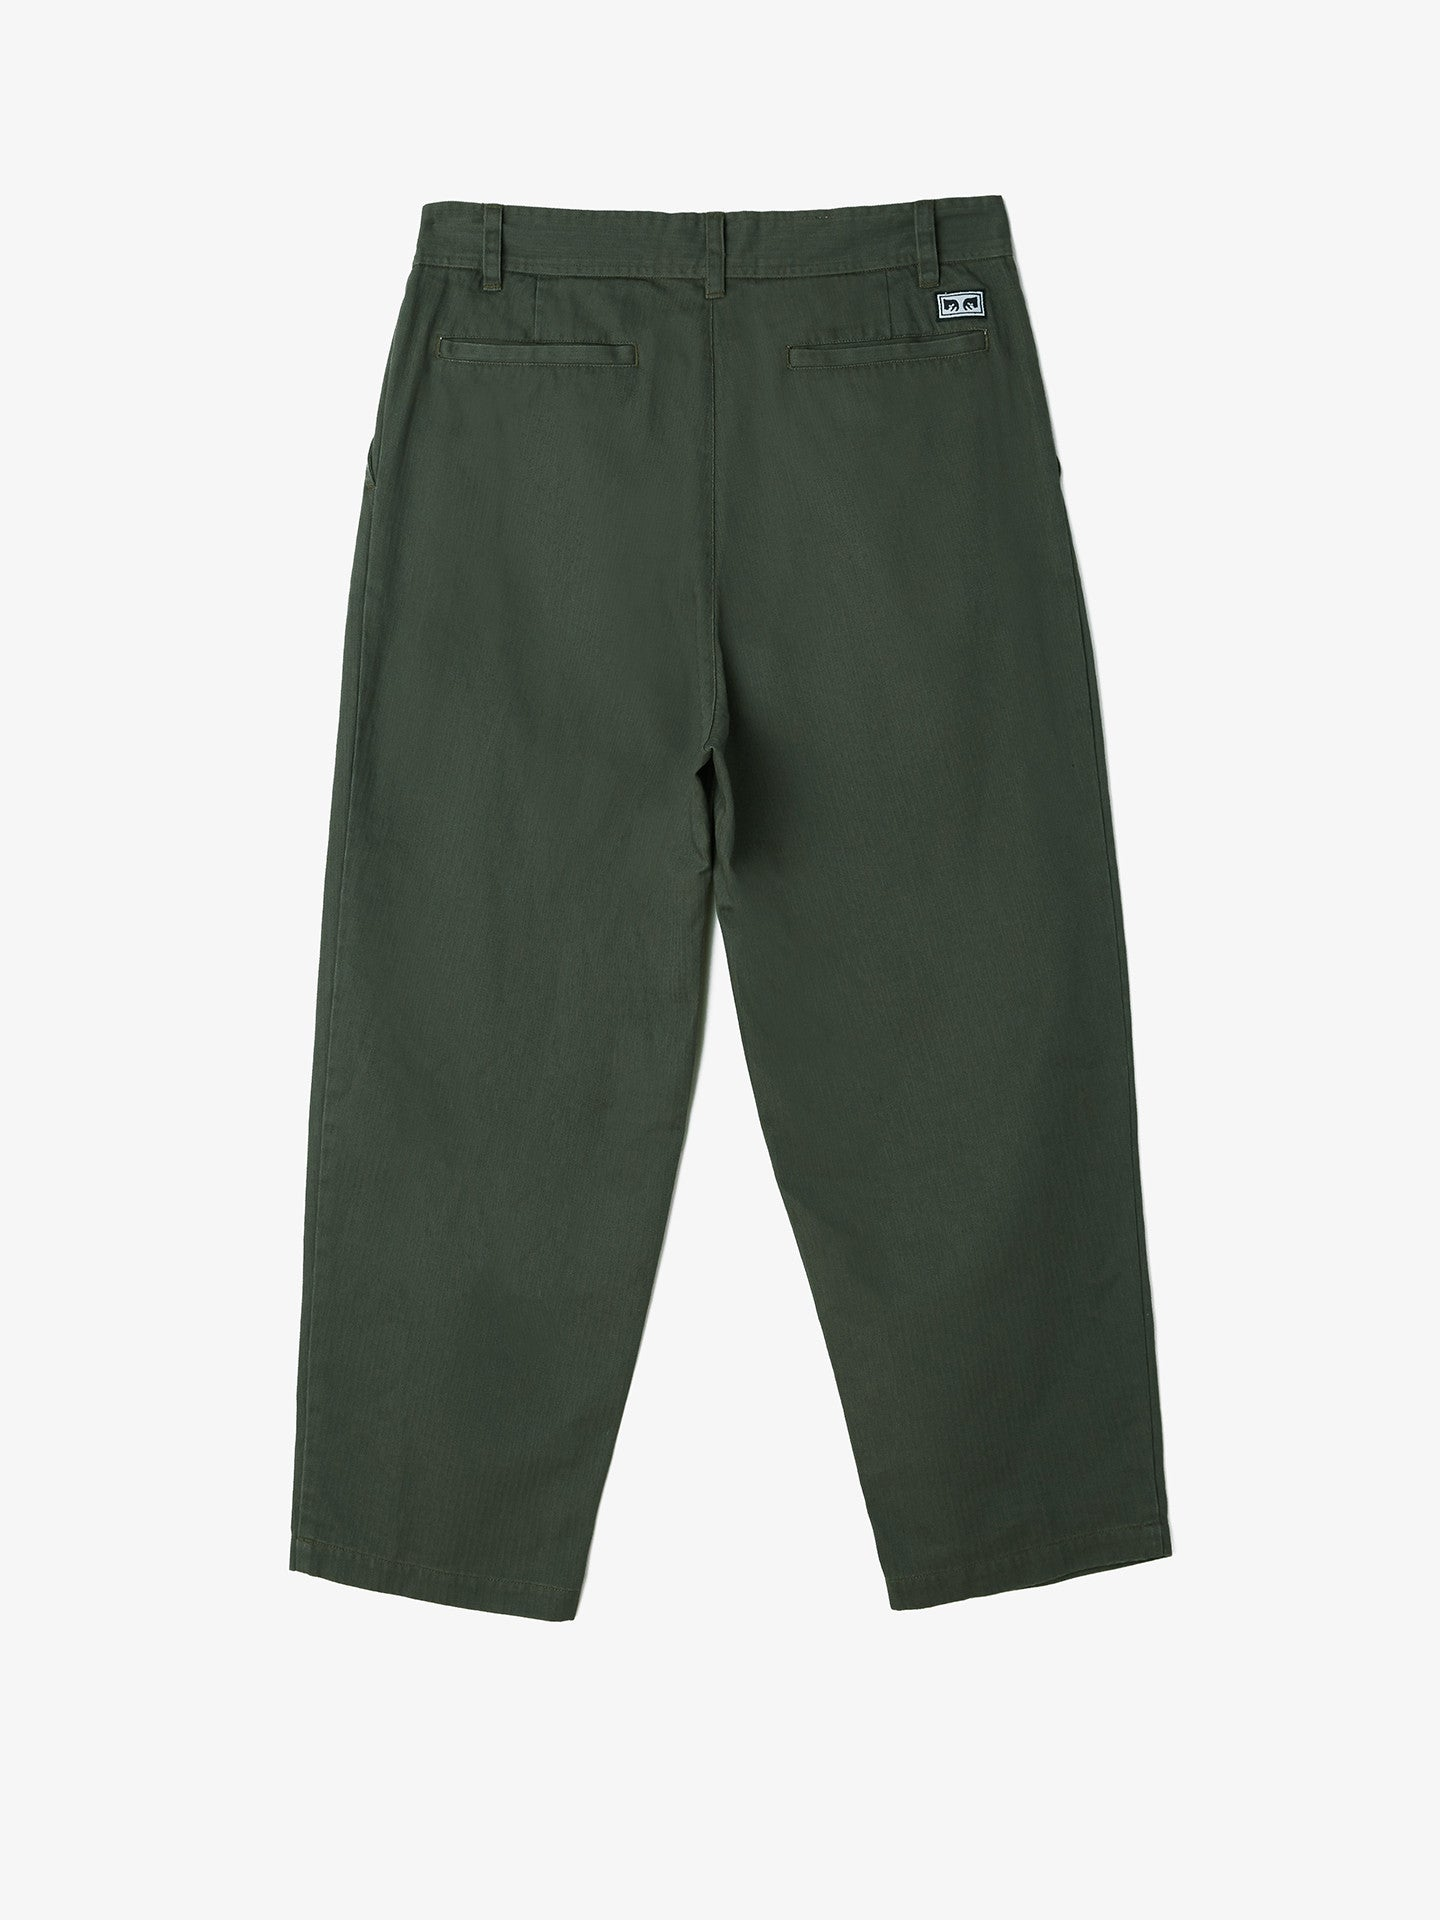 OBEY - Fubar Big Fits Men's Pants, Army - The Giant Peach